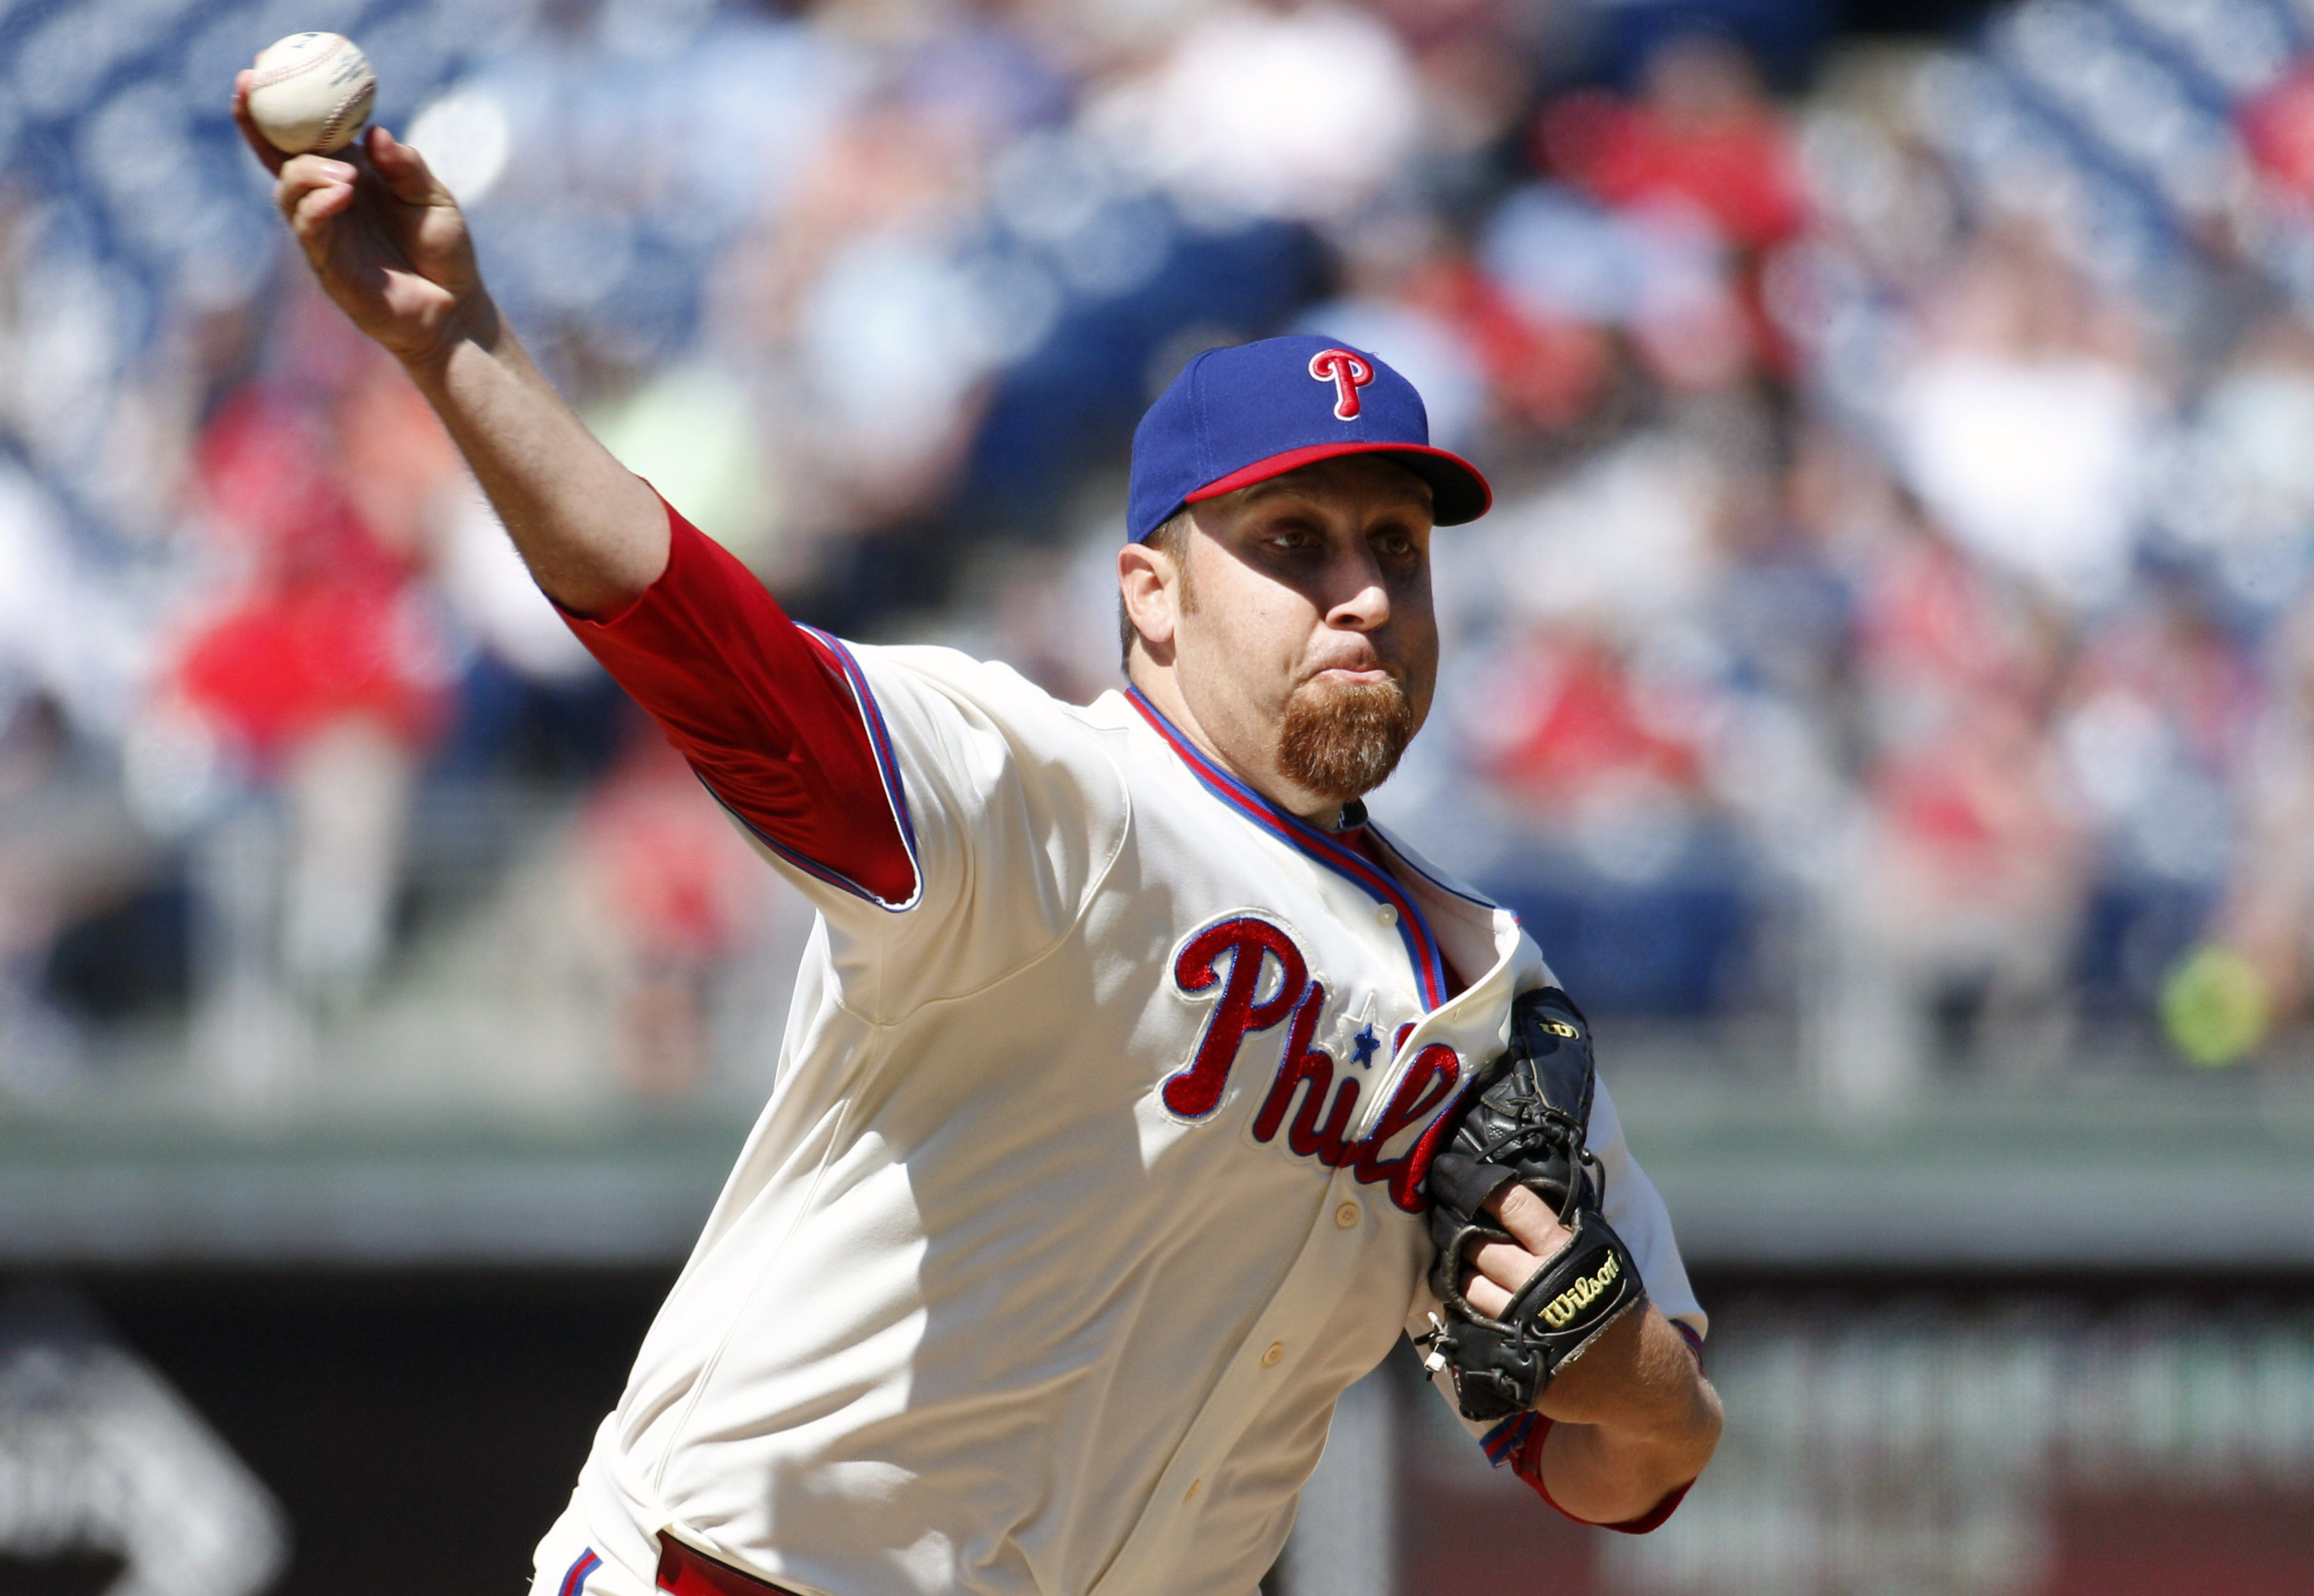 Philadelphia Phillies starting pitcher Aaron Harang throws a pitch during the eighth inning of a baseball game against the Pittsburgh Pirates, Thursday, May 14, 2015, in Philadelphia. The Phillies won 4-2. (AP Photo/Chris Szagola)